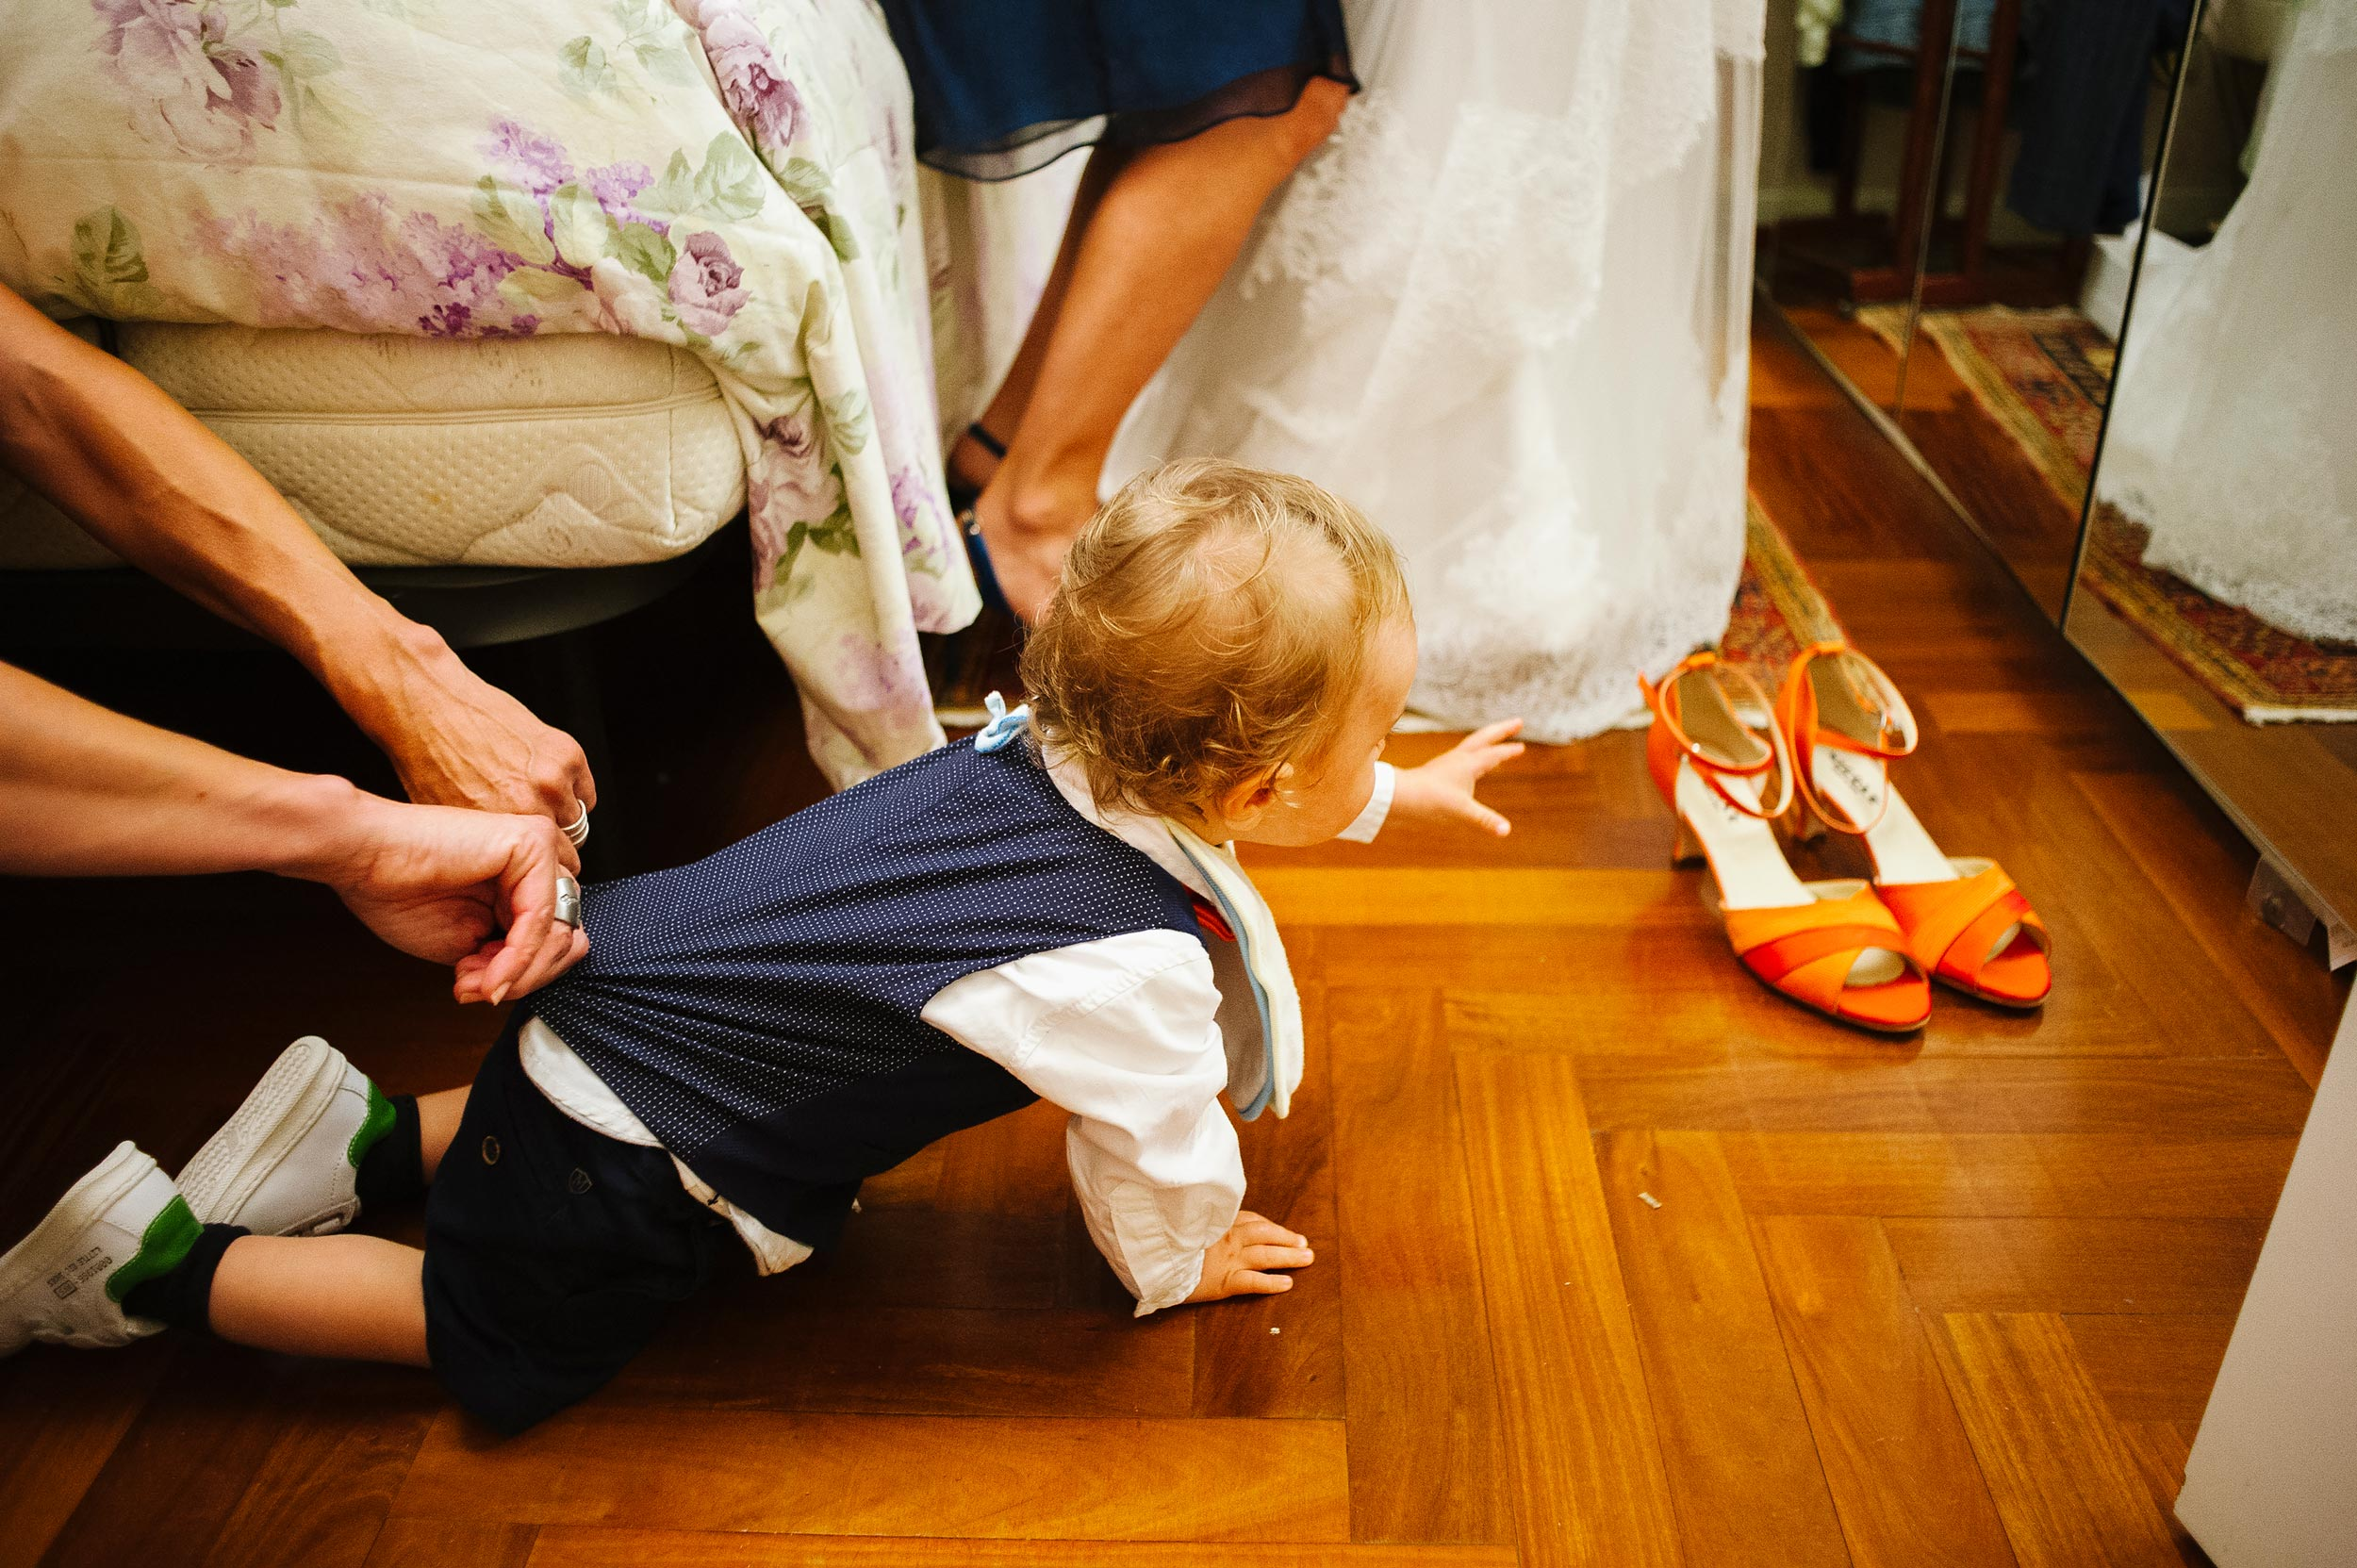 kid-aims-for-brides-shoes-while-his-mom-holds-him.jpg